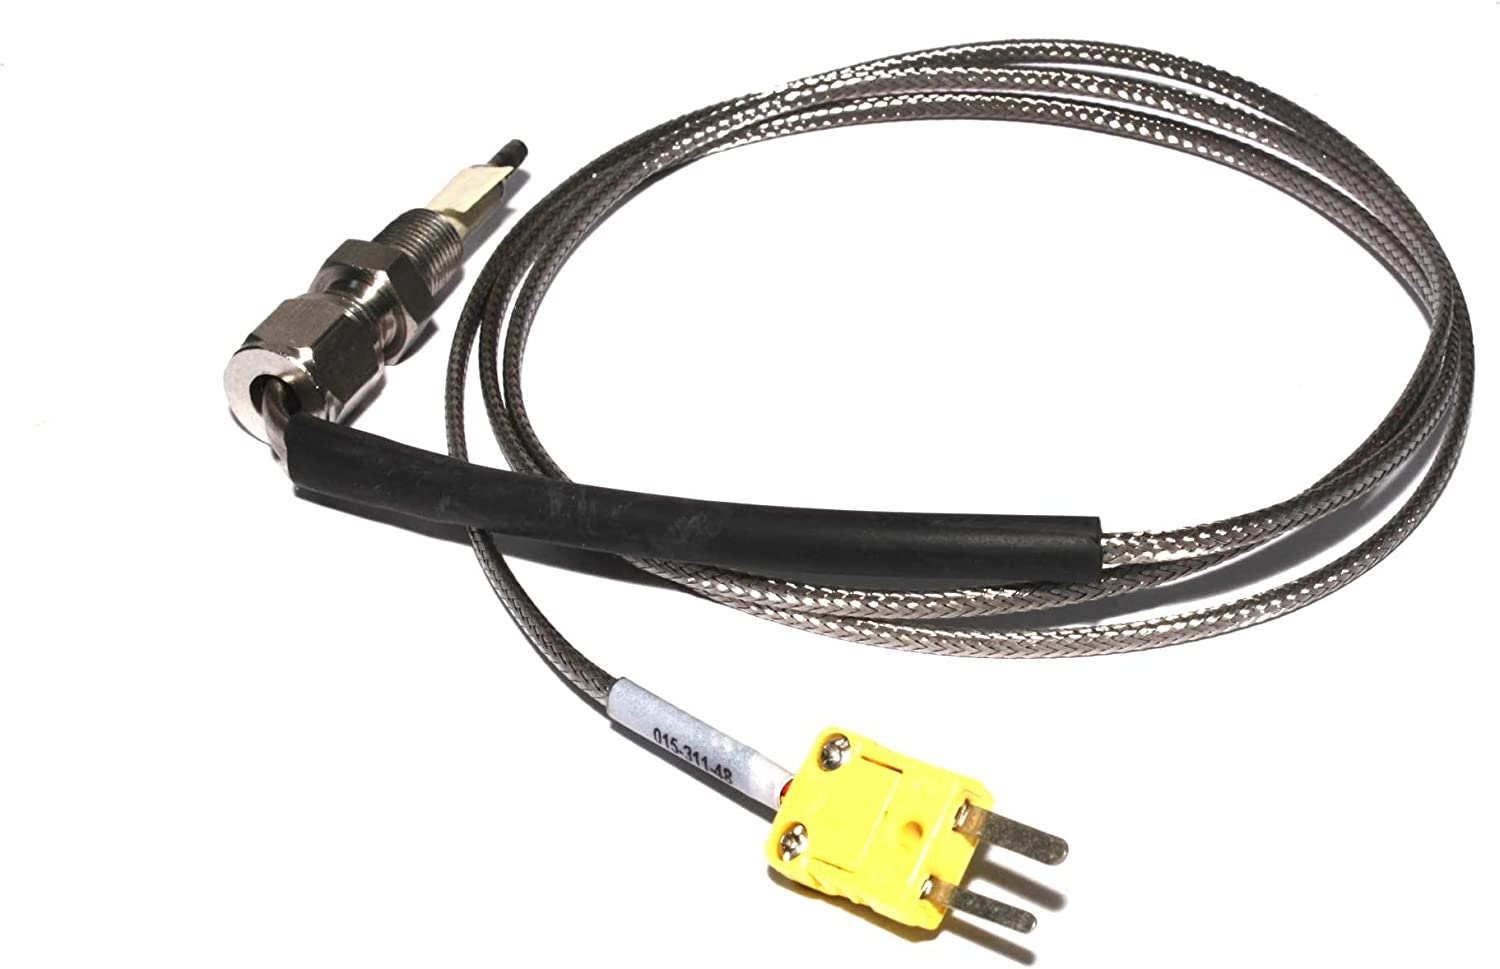 Comp New sales Cams 301425 Get Connector with Probe Regular discount Mini